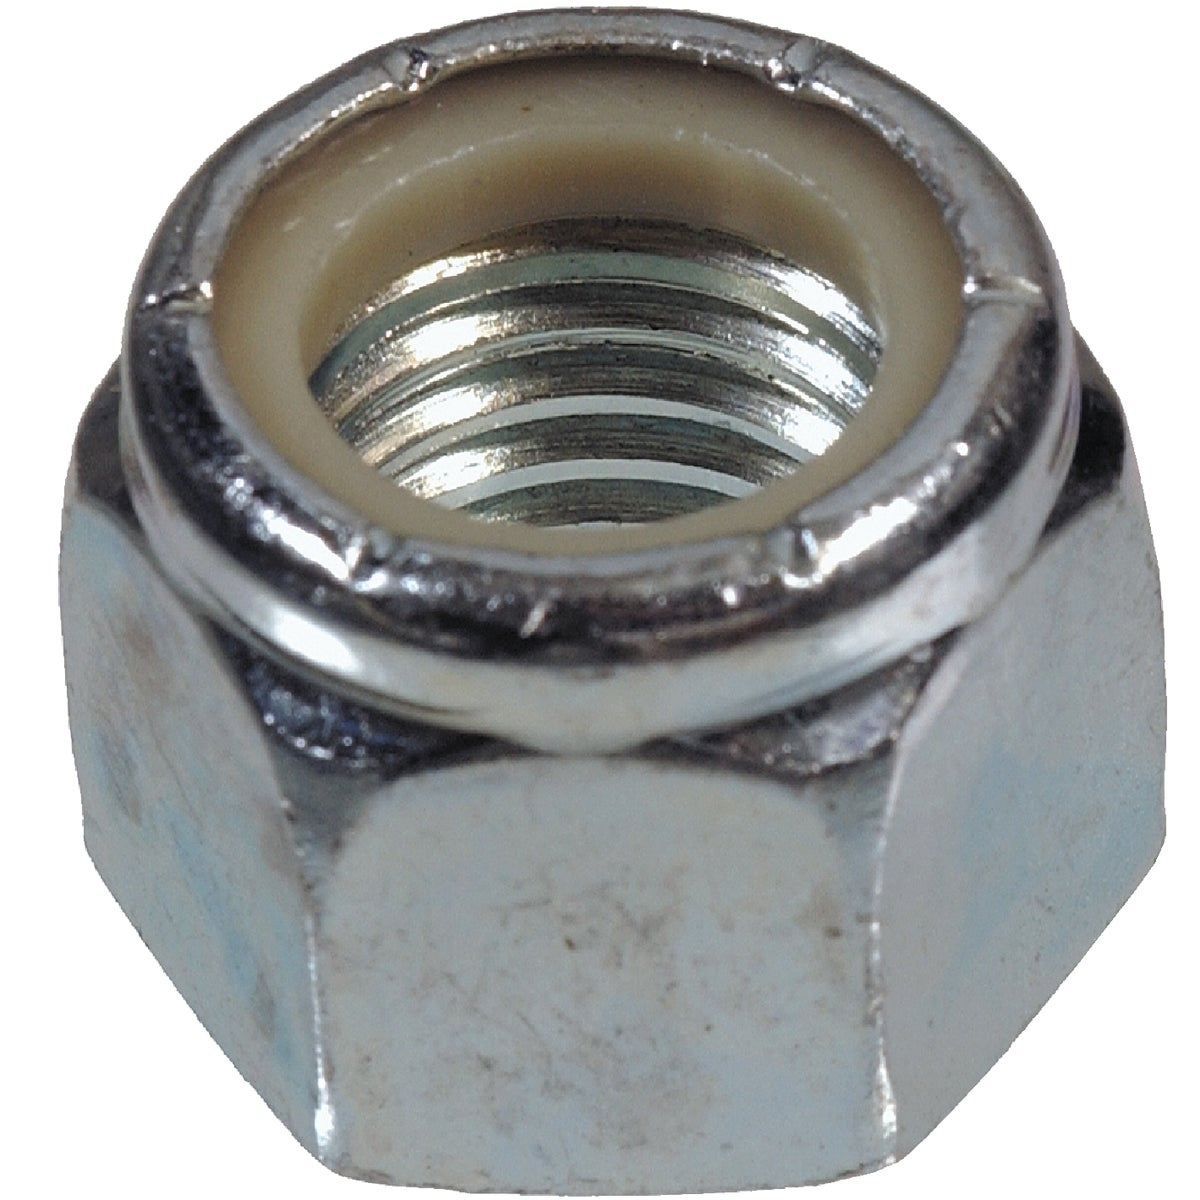 3/8-16 NYLON LOCK NUT - 180153 by Hillman Fastener